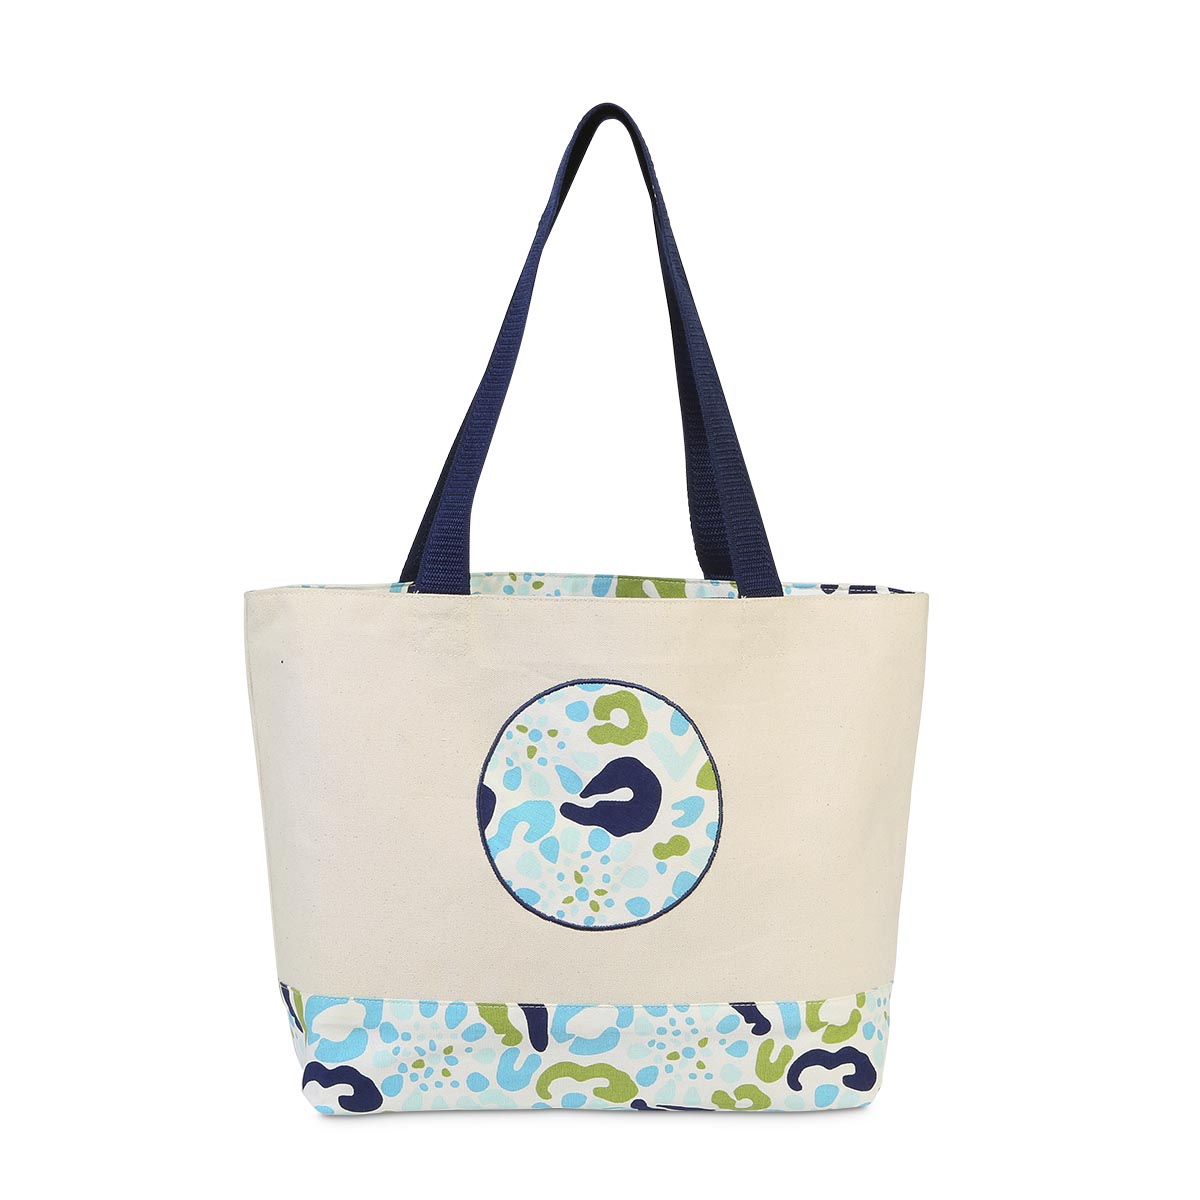 cha cha cheetah circle applique tote